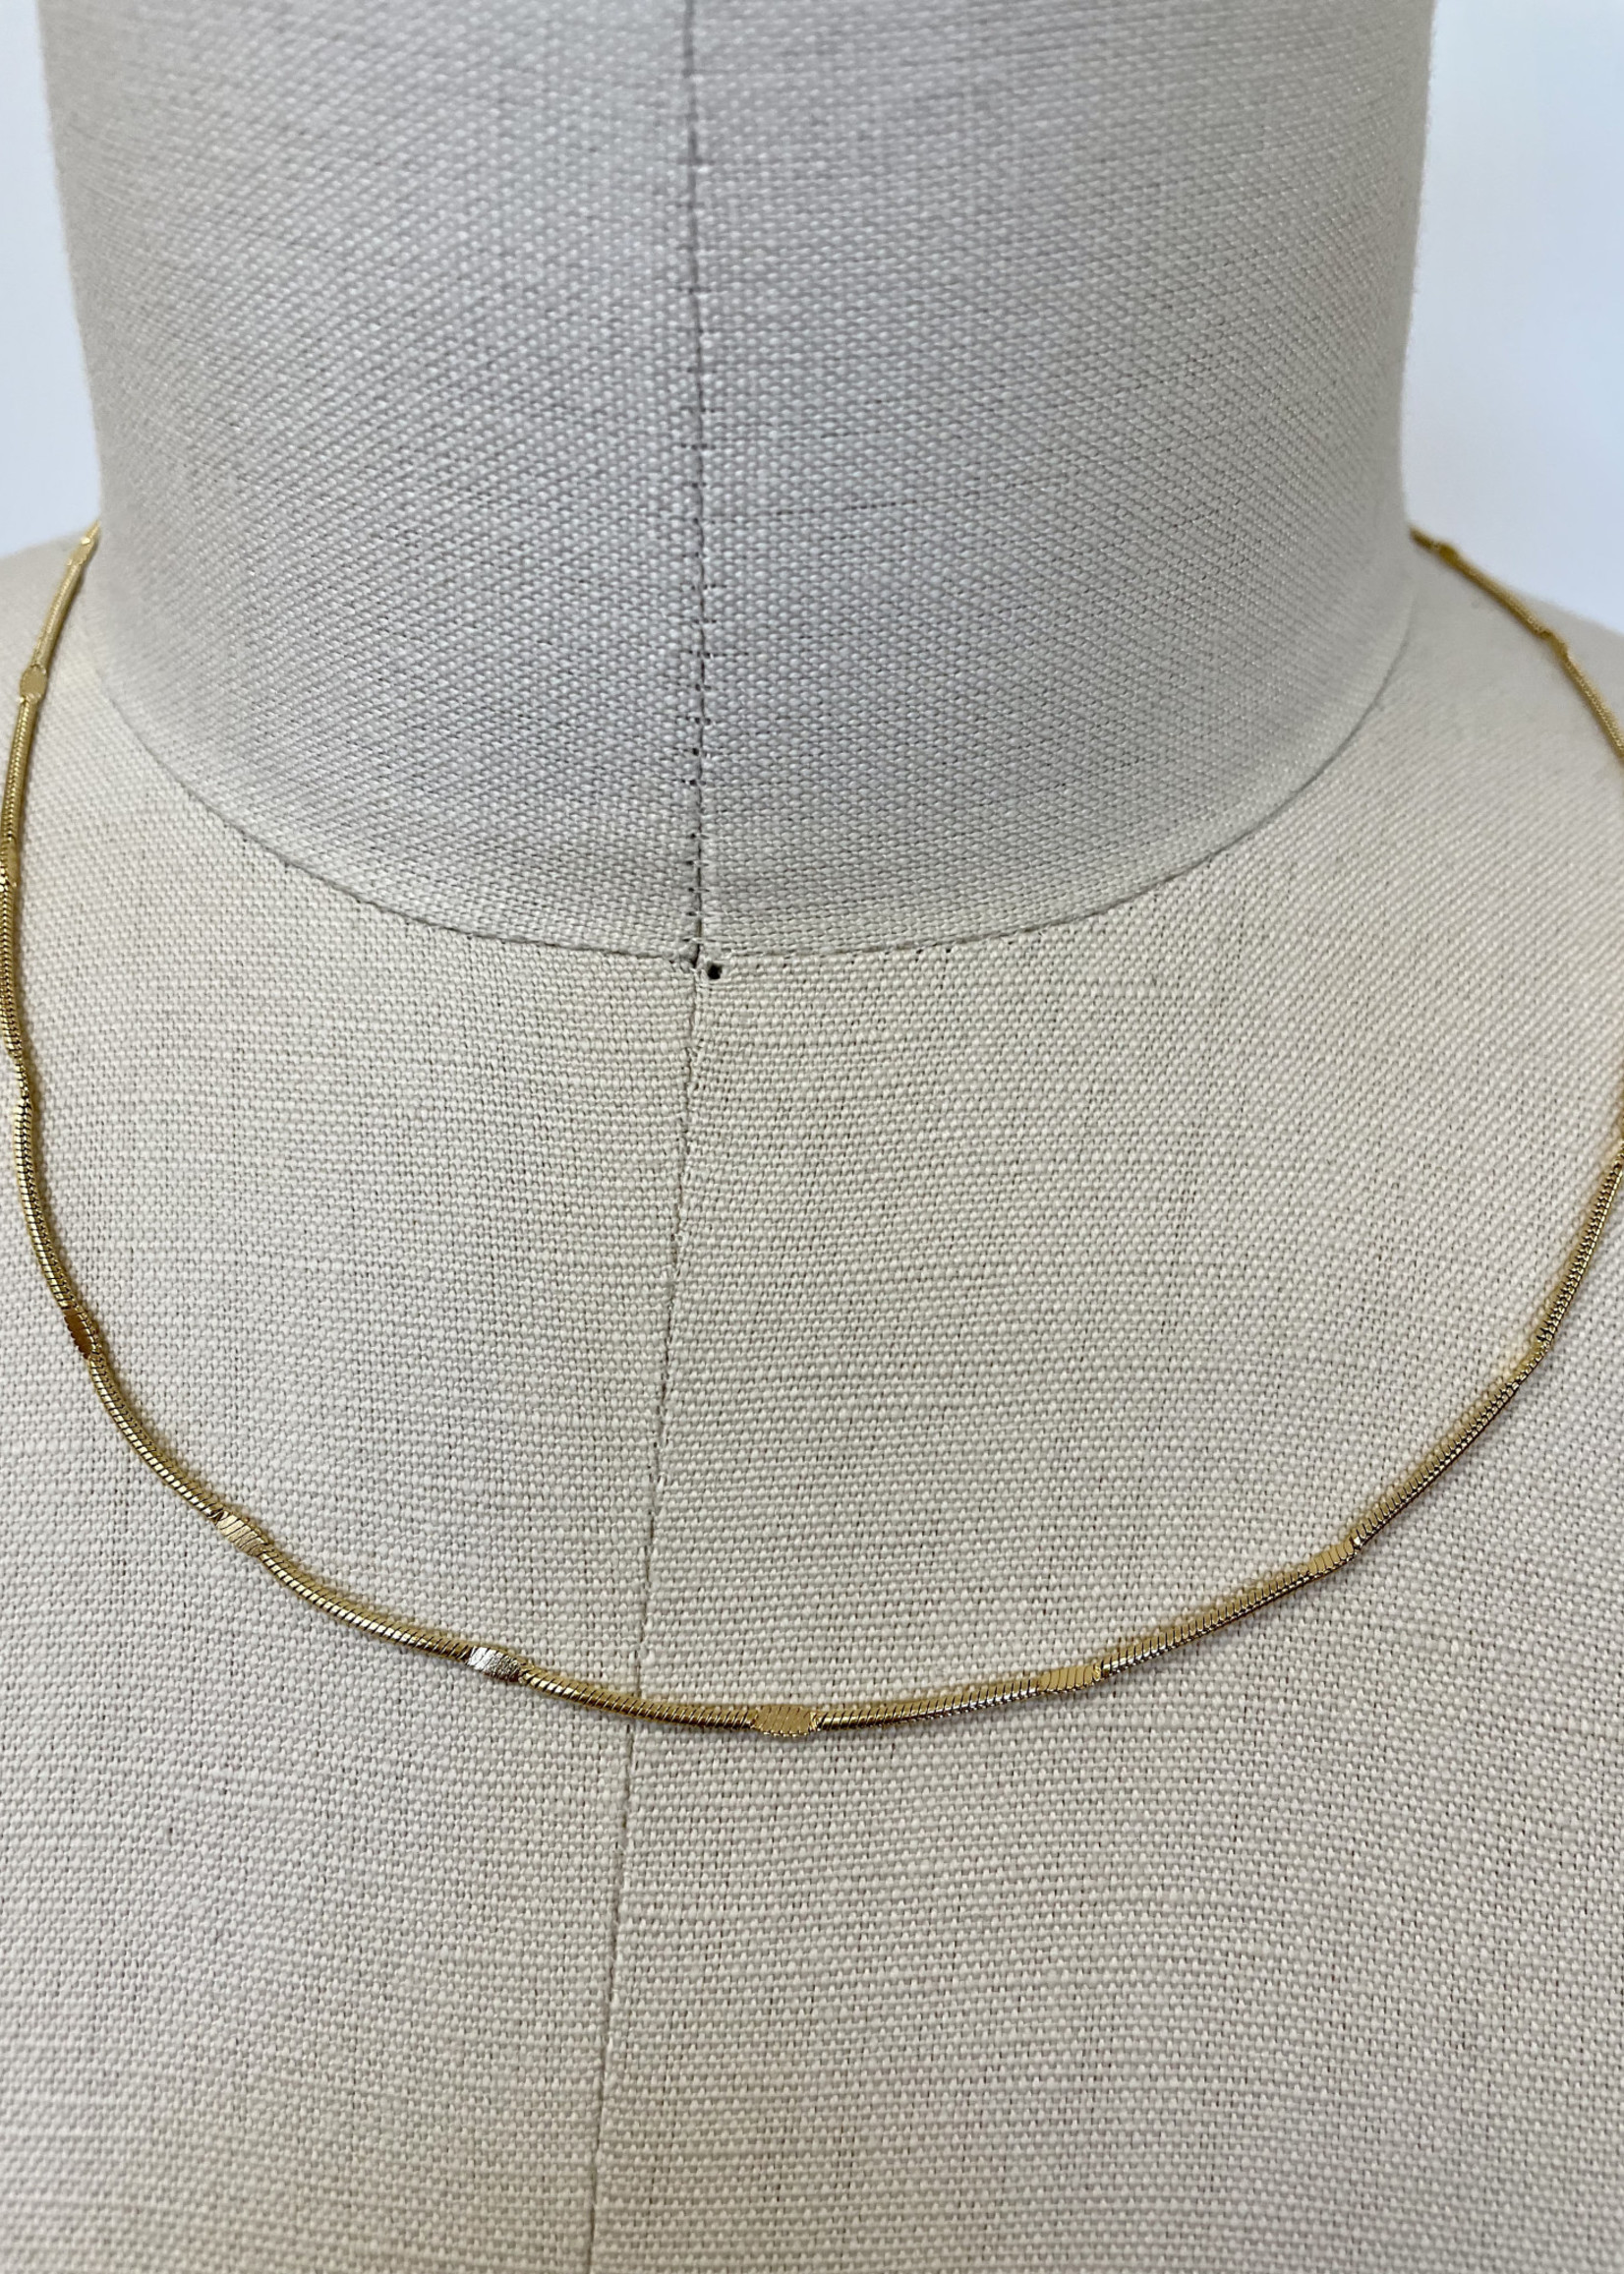 House of Jewels Chella Pressed Snake Neck